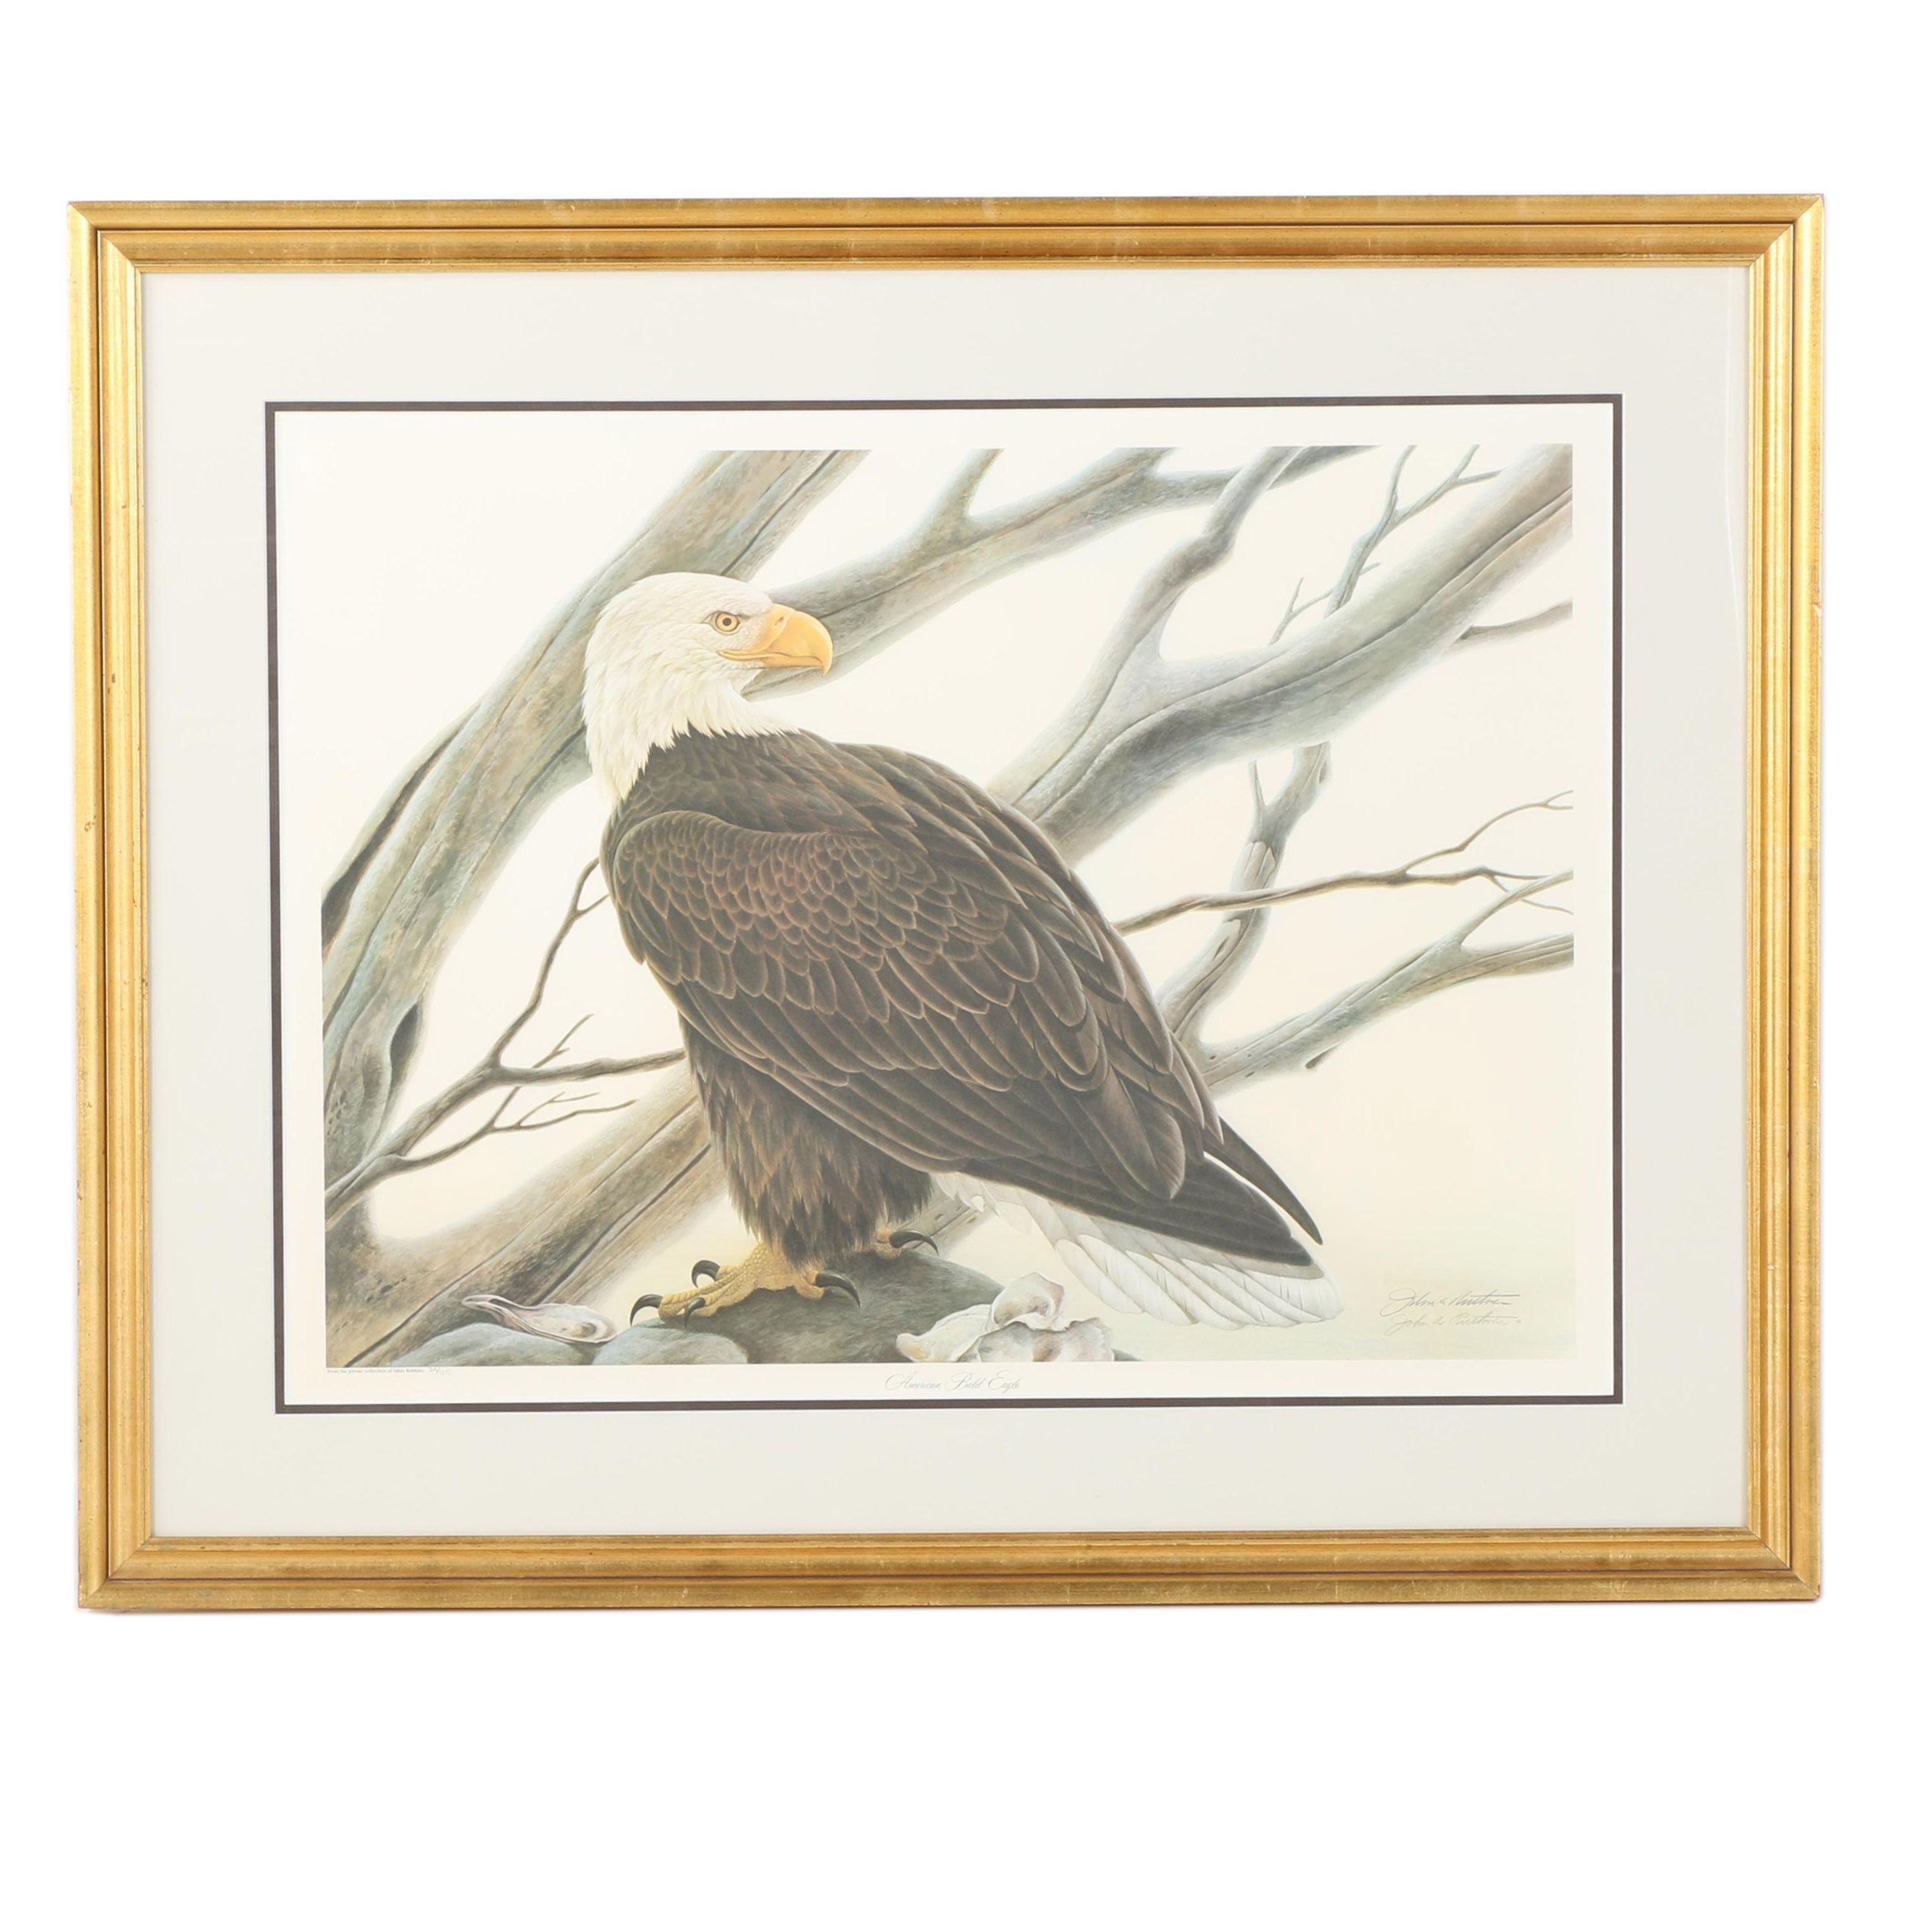 "Limited Edition Offset Lithograph by John Ruthven ""American Bald Eagle"""